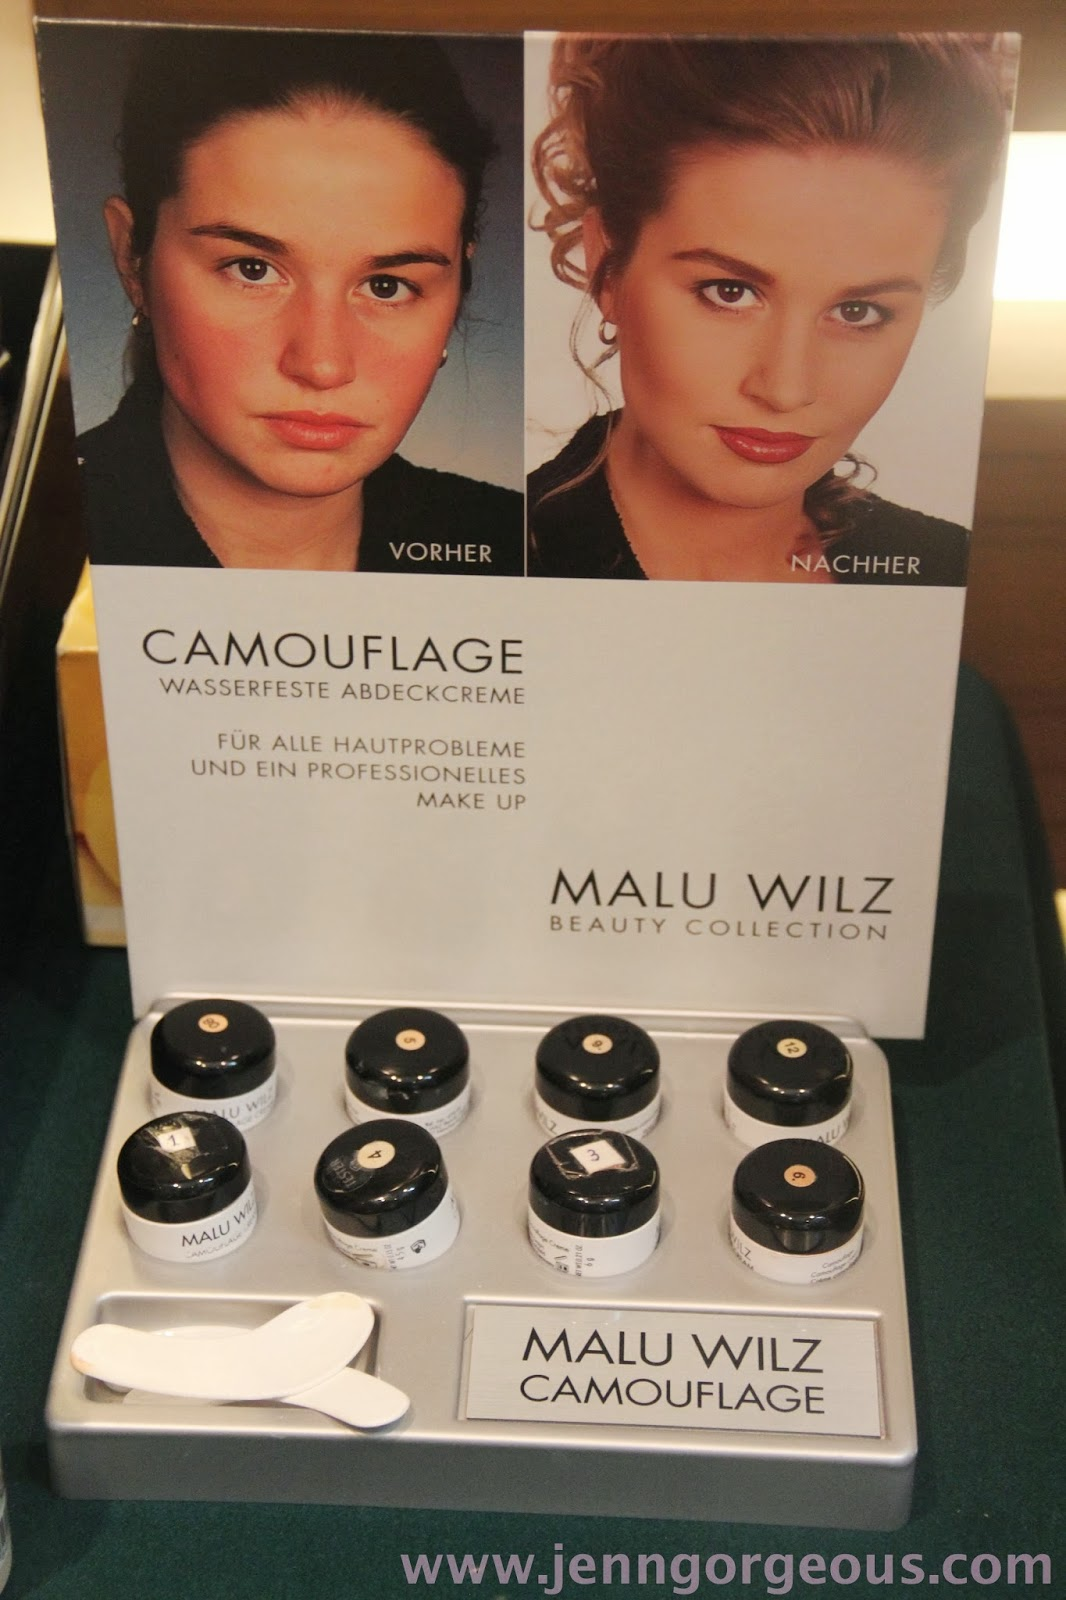 malu wilz makeup and skincare products event jenngorgeous. Black Bedroom Furniture Sets. Home Design Ideas